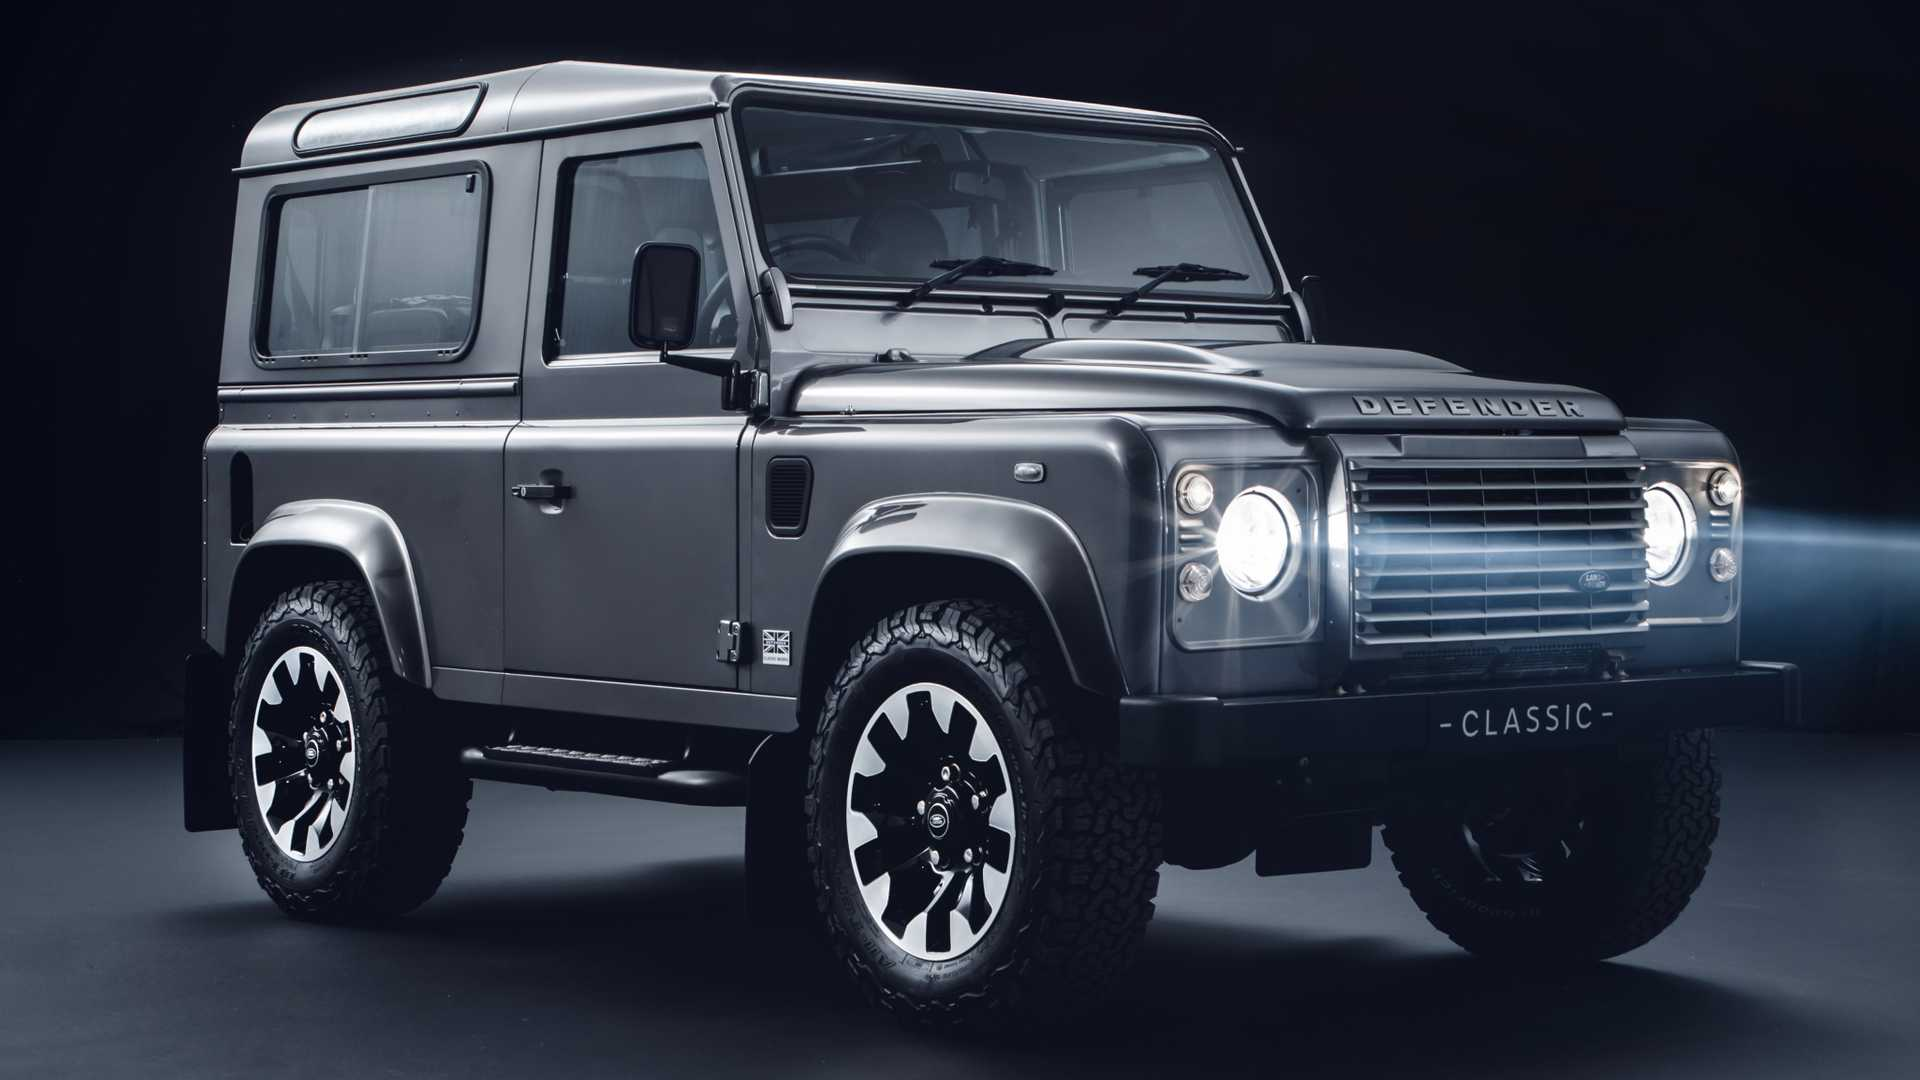 Land Rover Freshens Up Old Defender With New Upgrades